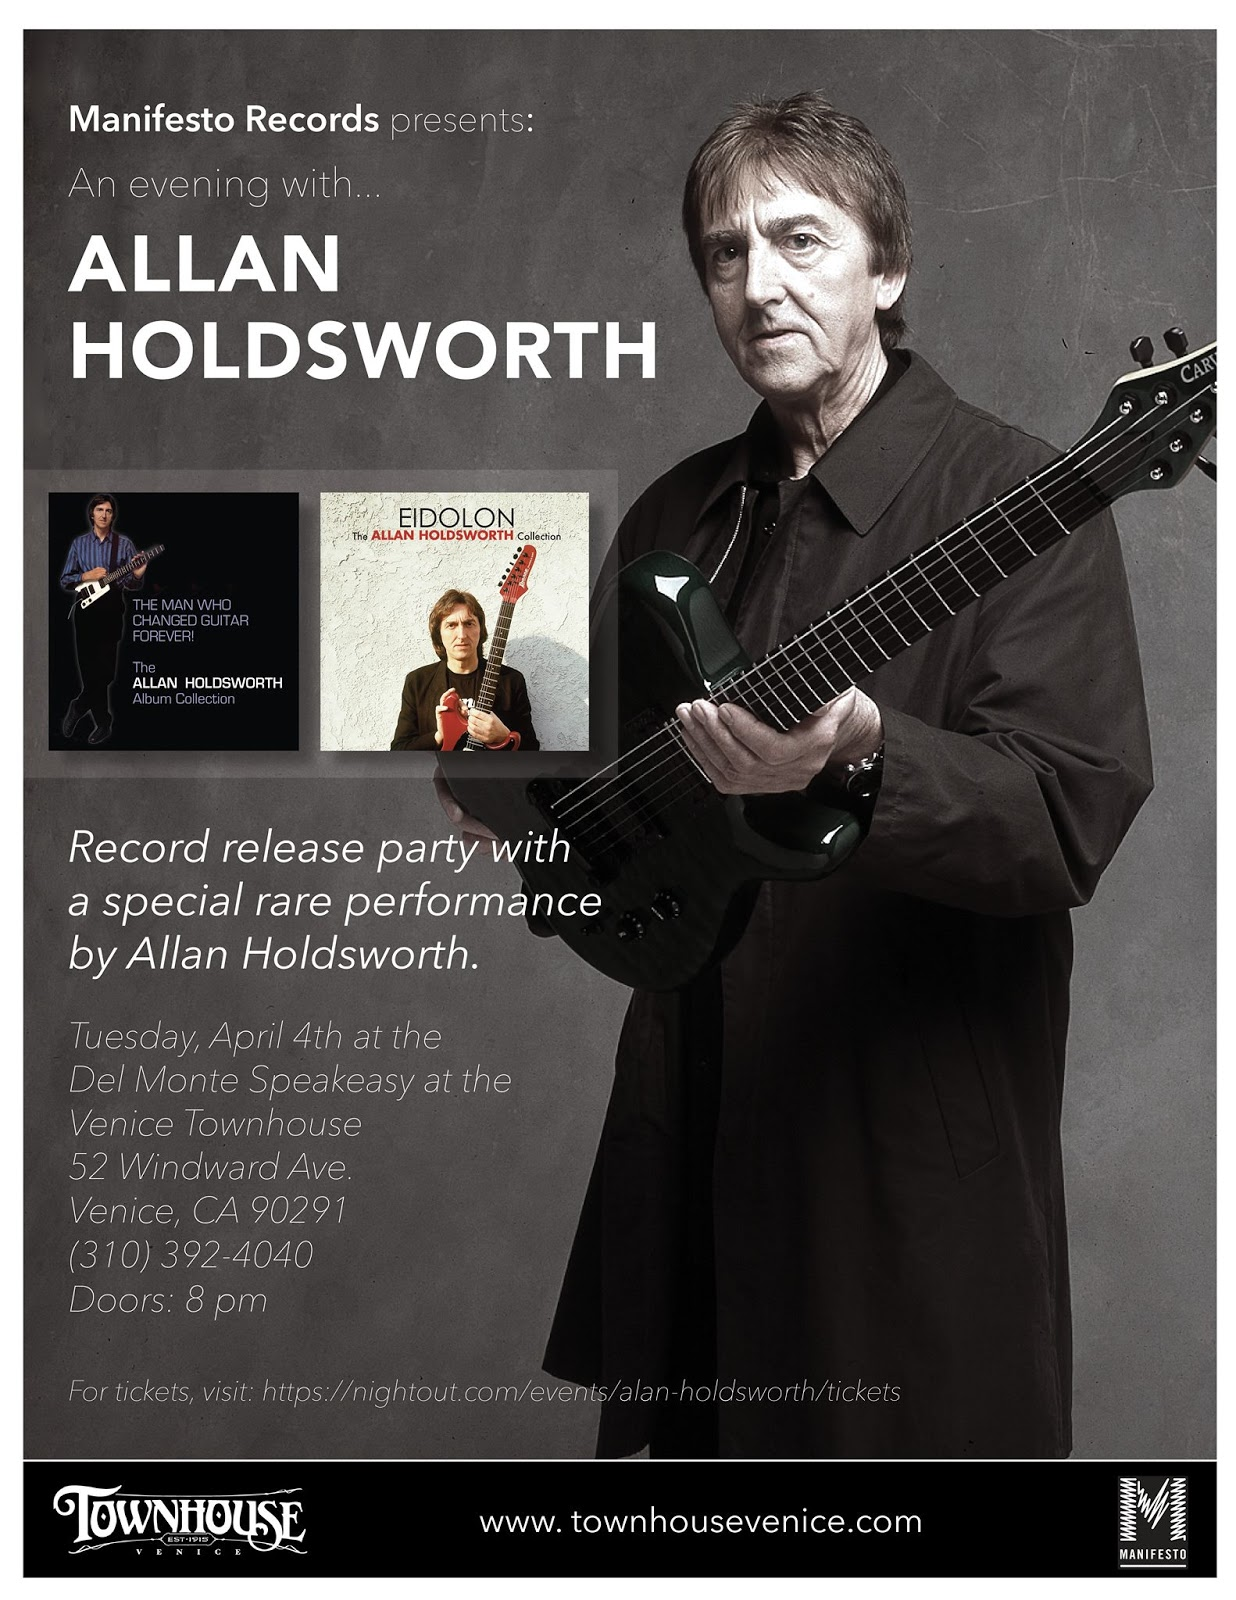 Allan Holdsworth Allan Holdsworth Man Who Changed Guitar Forever Box Set